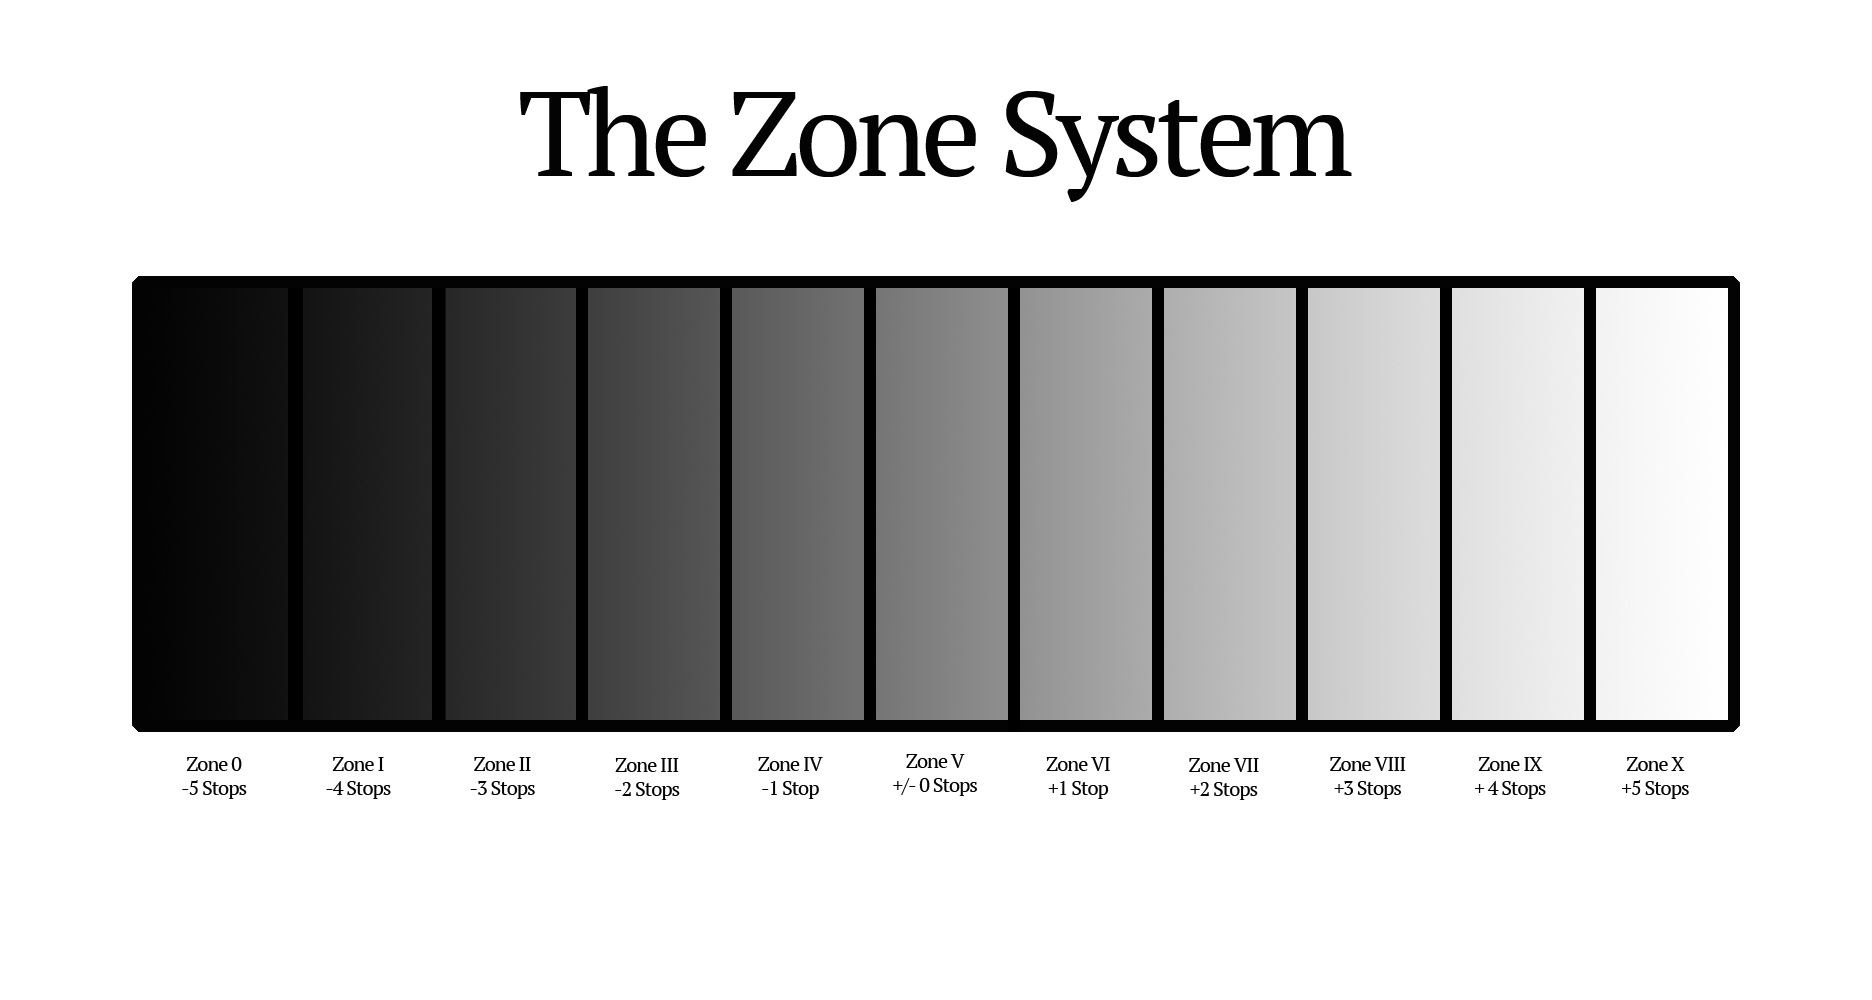 The Zone System in all of its glory.